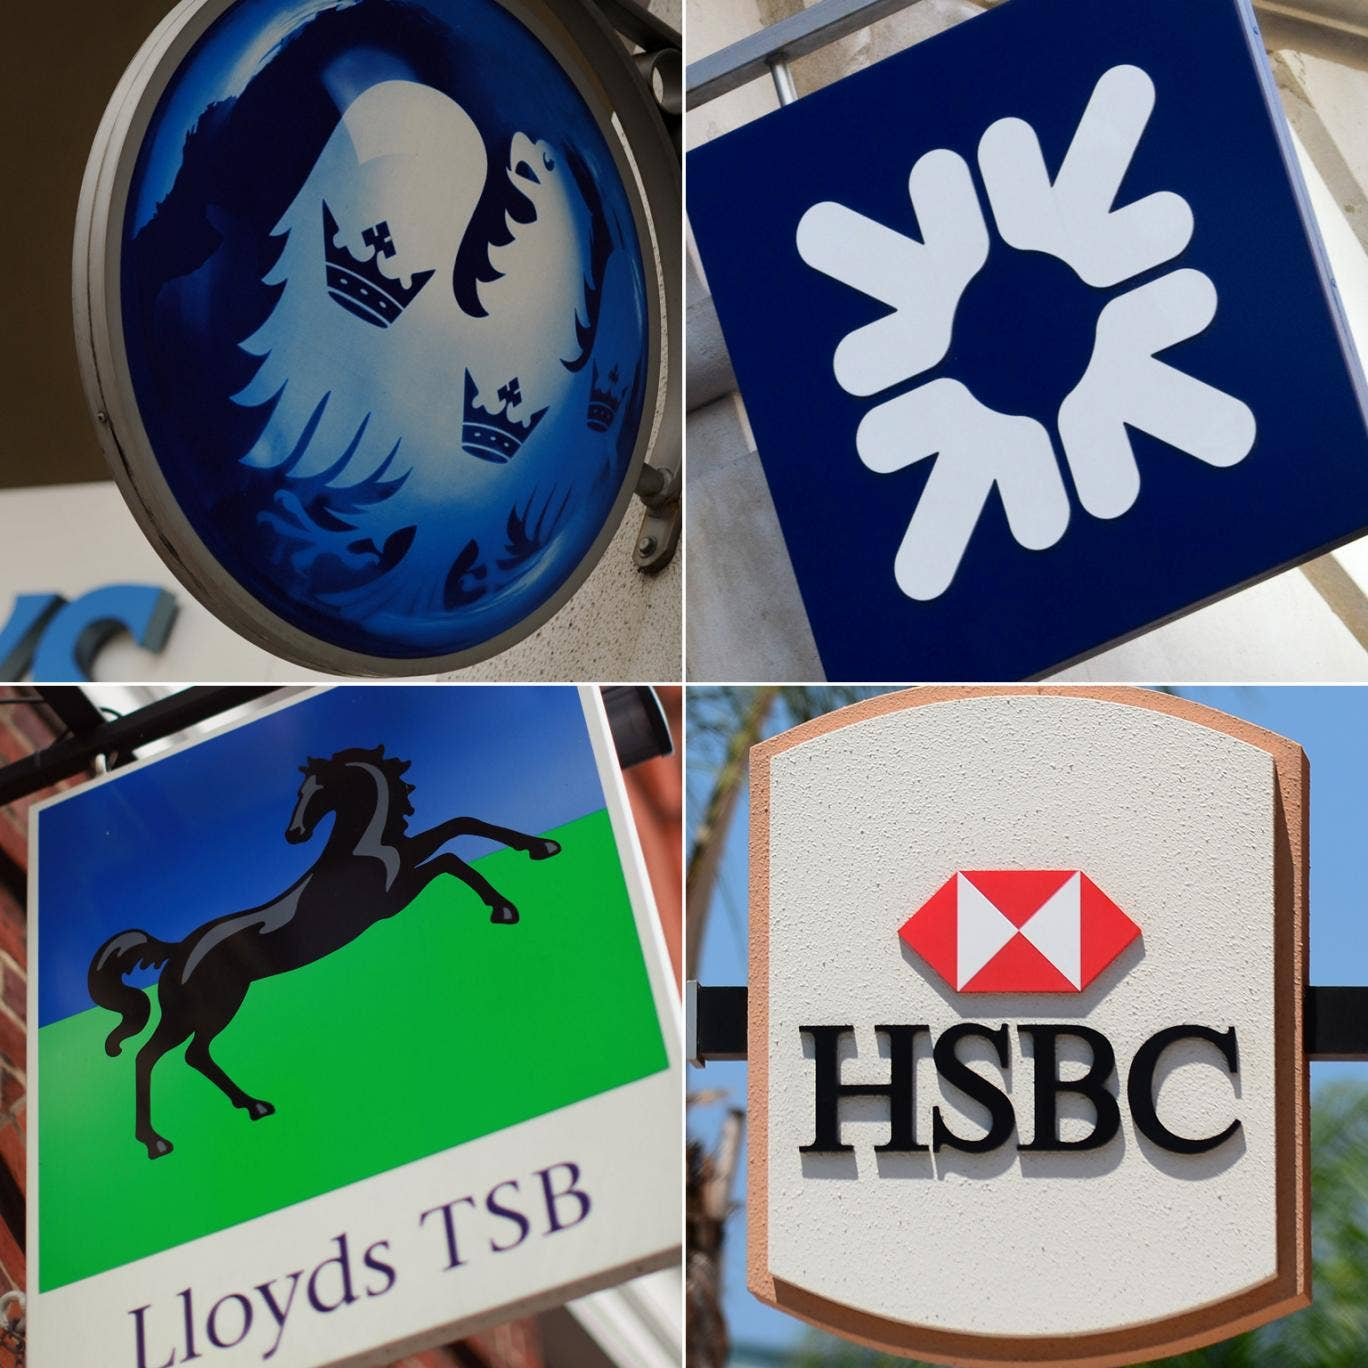 Barclays, RBS, Lloyds and HSBC 'broke rules' with sales of interest rate hedges to small businesses